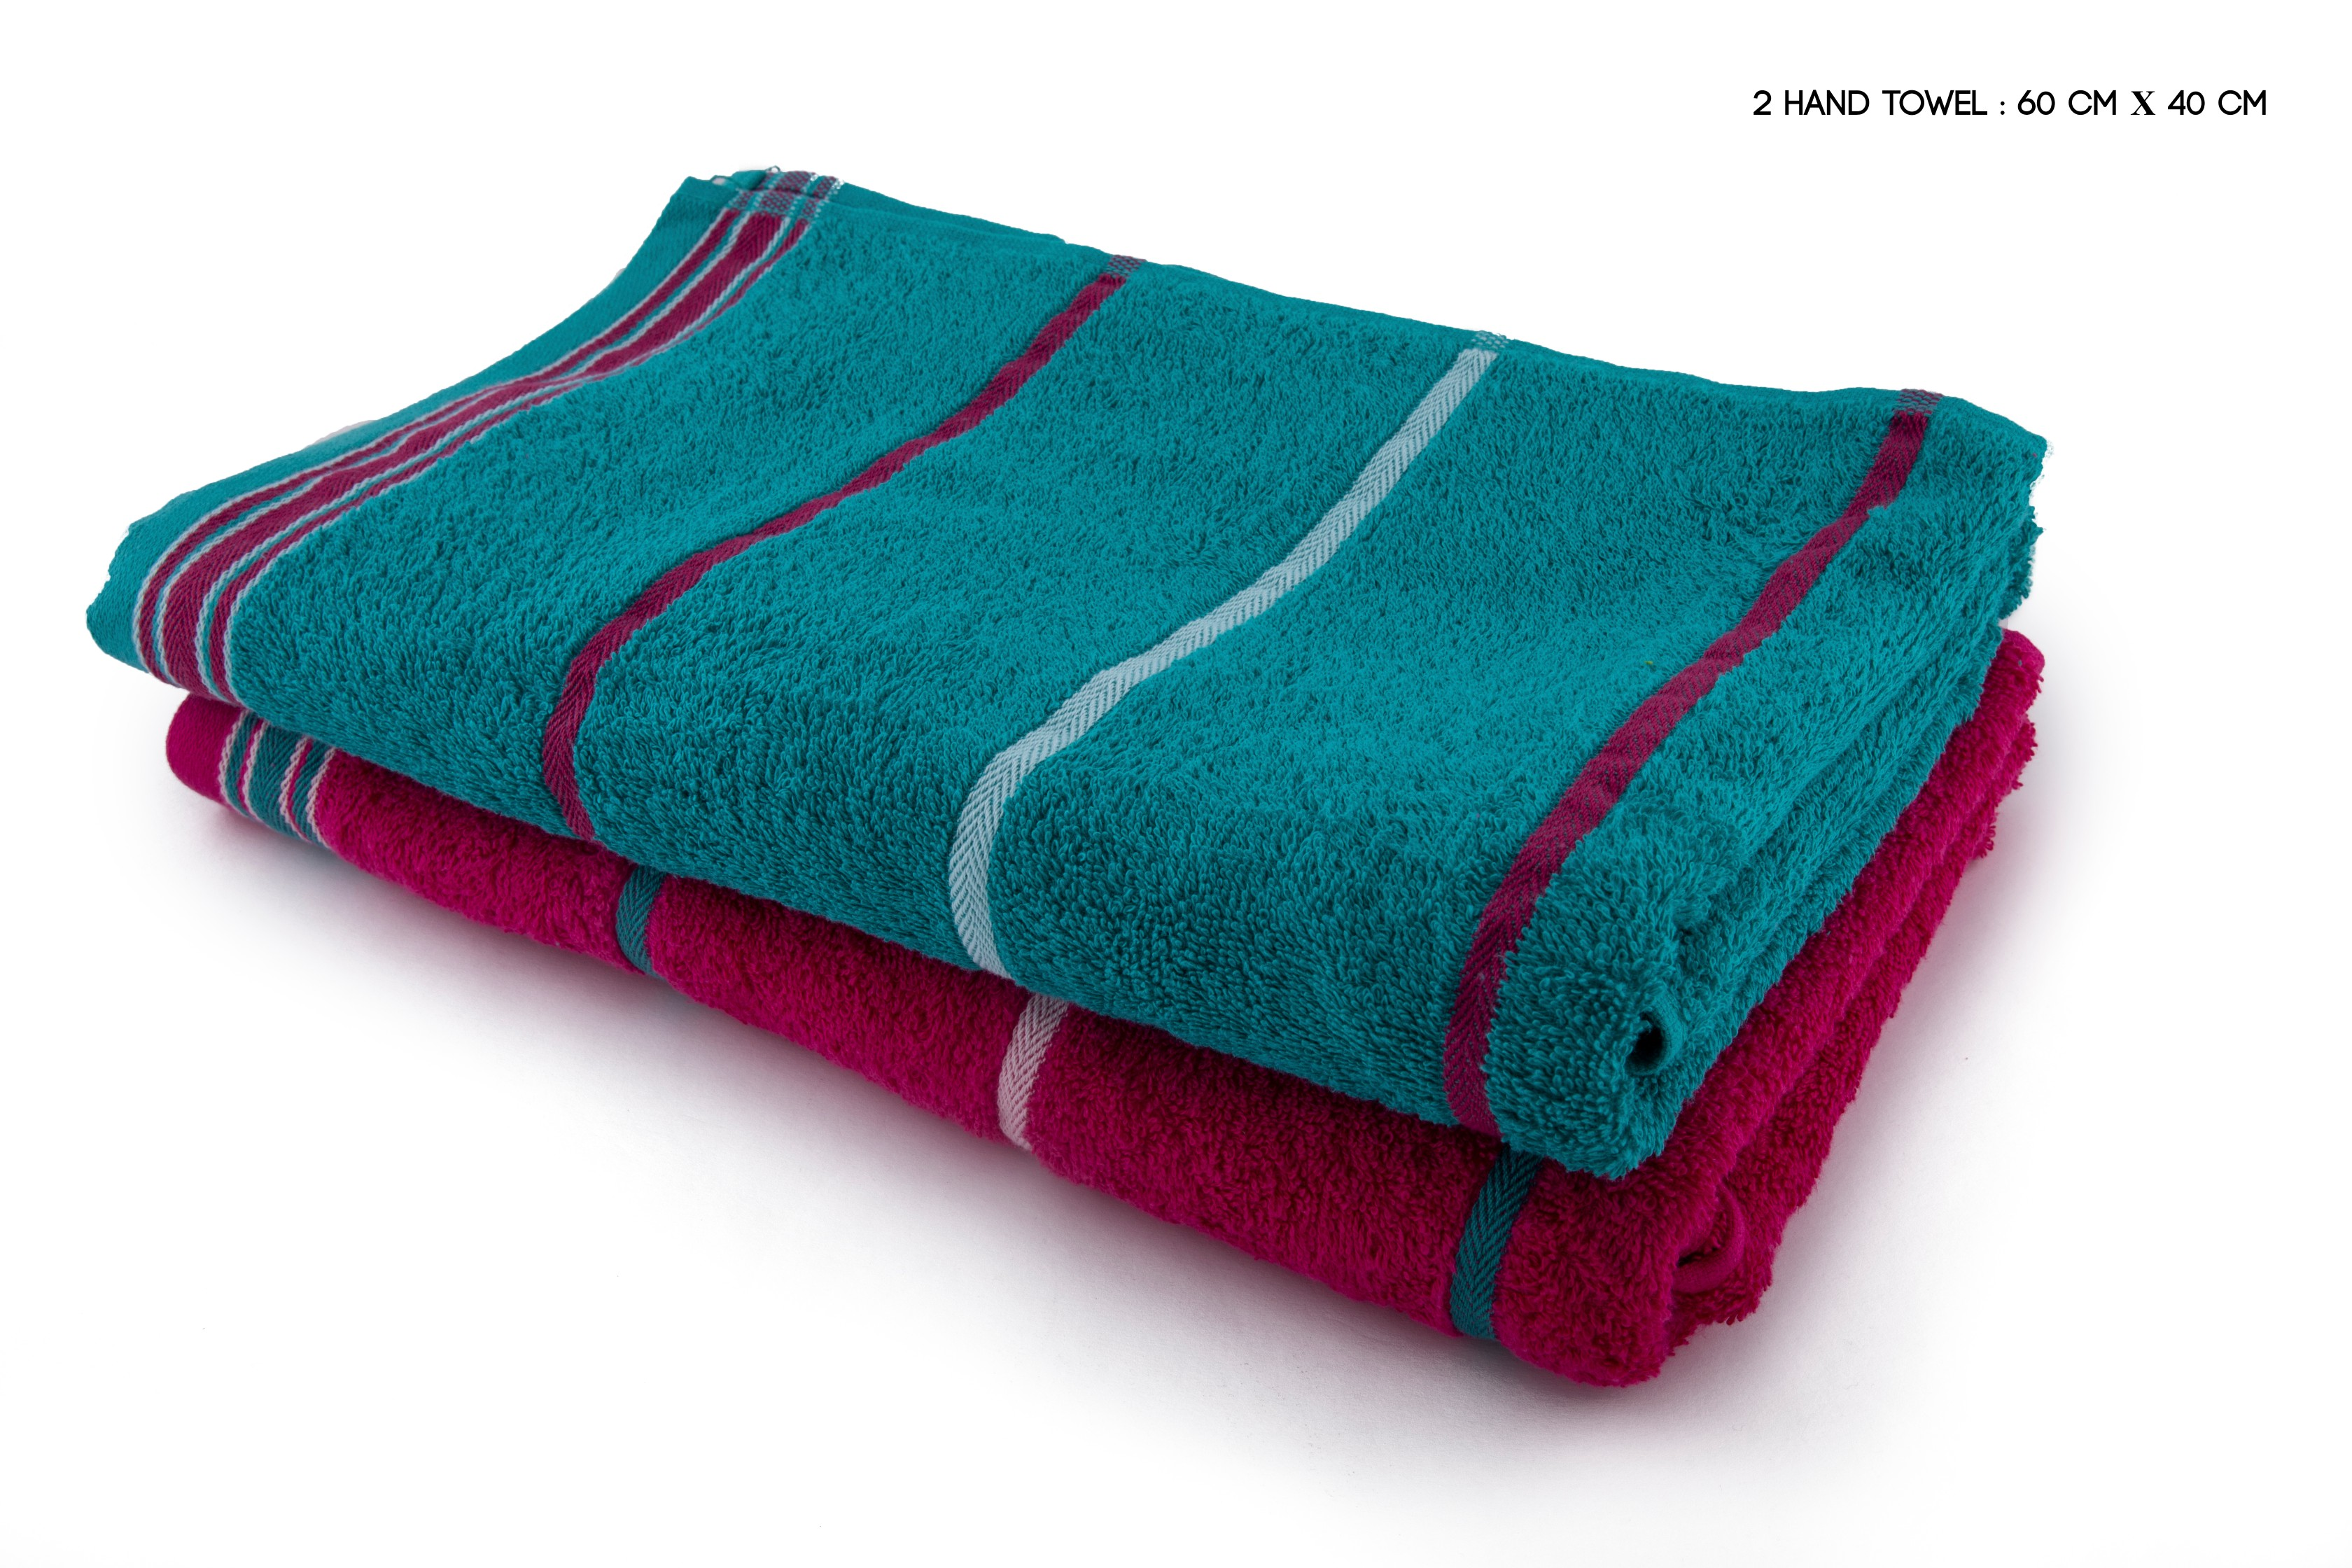 Living Essence Emilia Handtowel Set Of 2 Cotton Hand Towels in Teal & Pink Colour by HomeTown